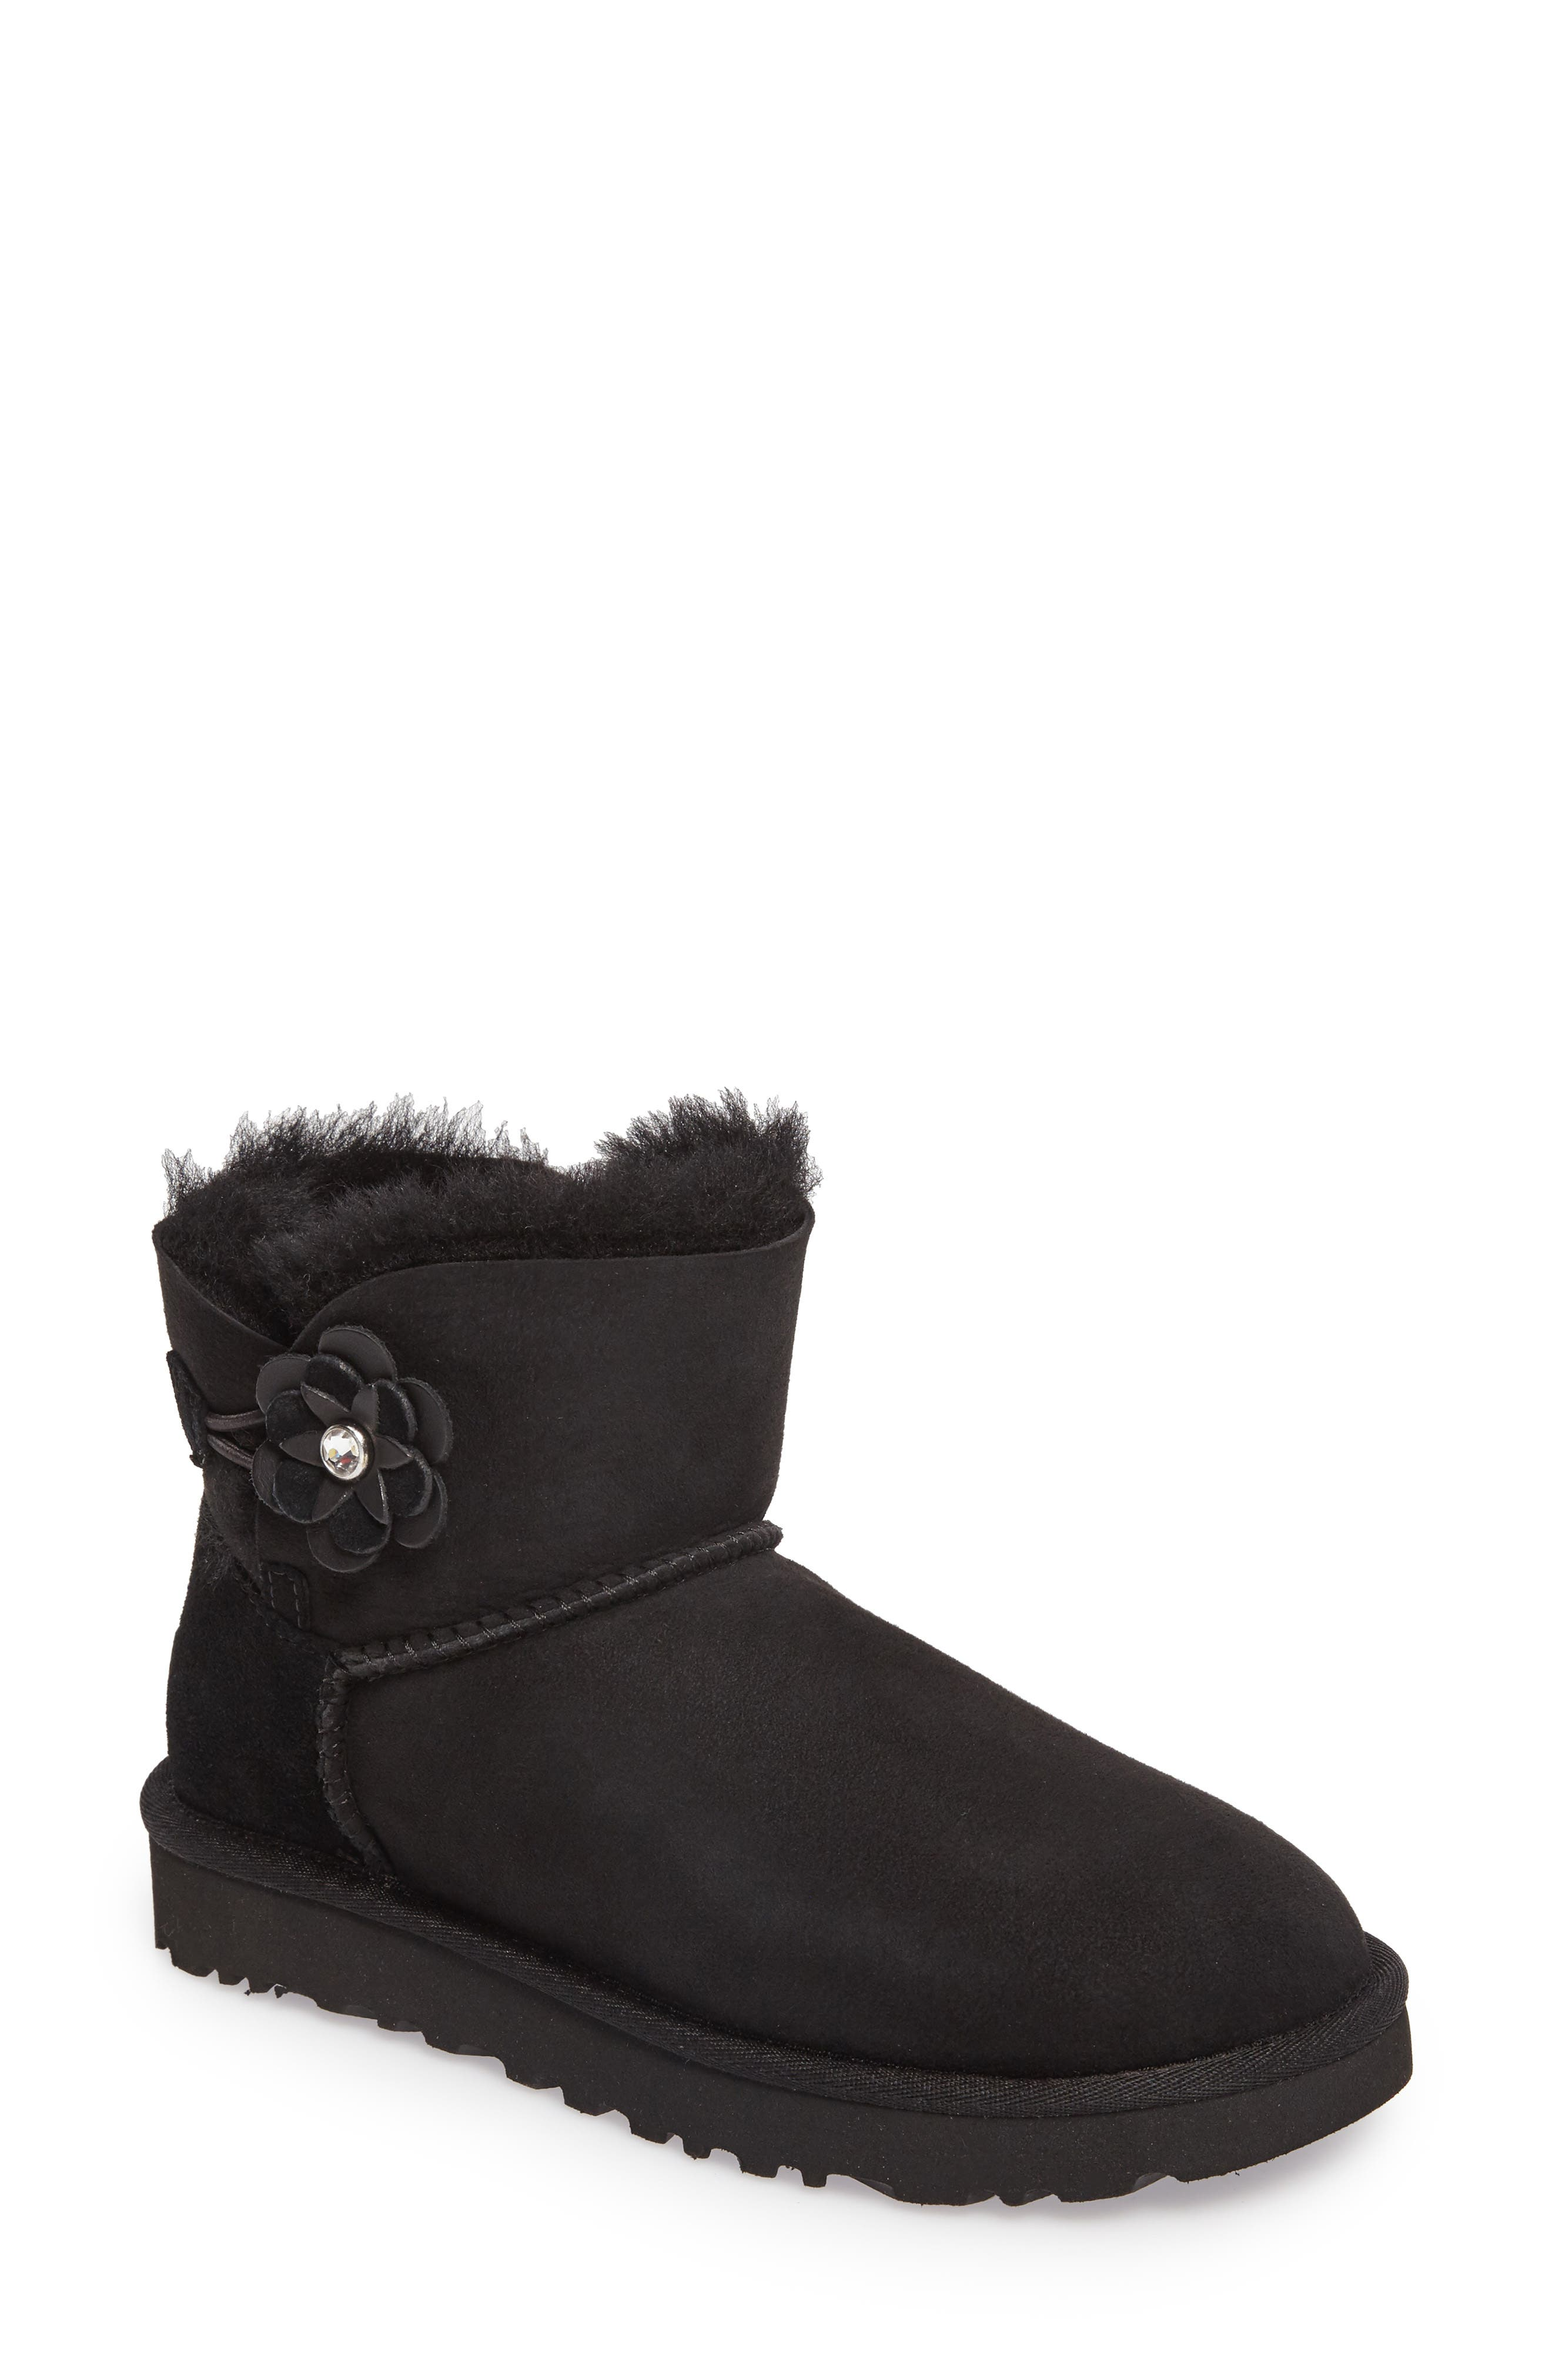 Main Image - UGG® Bailey Petal Genuine Shearling Lined Mini Boot (Women)